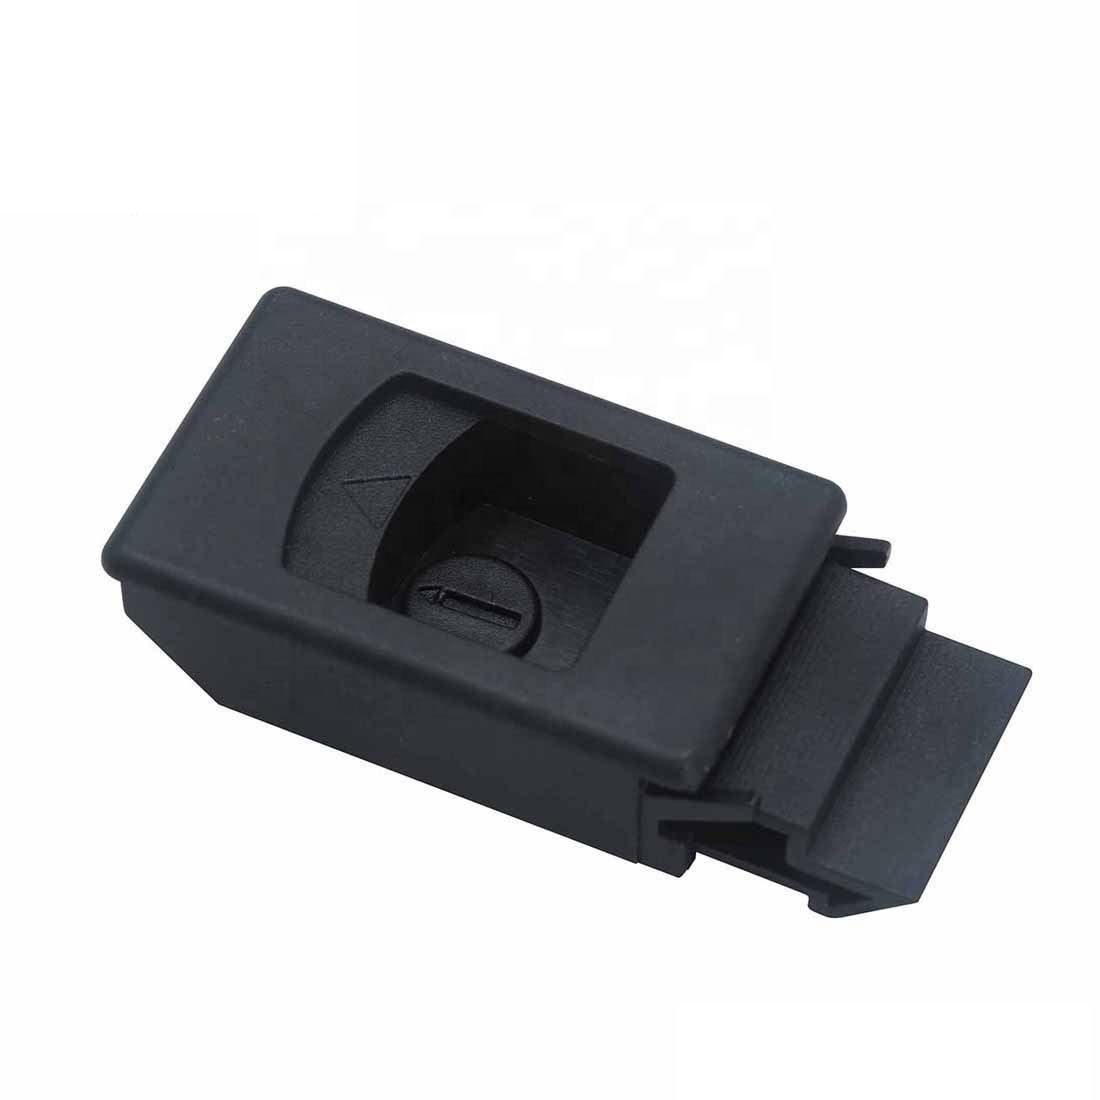 LM-725-L Hasp Small Plastic Slide Latch for Cabinet